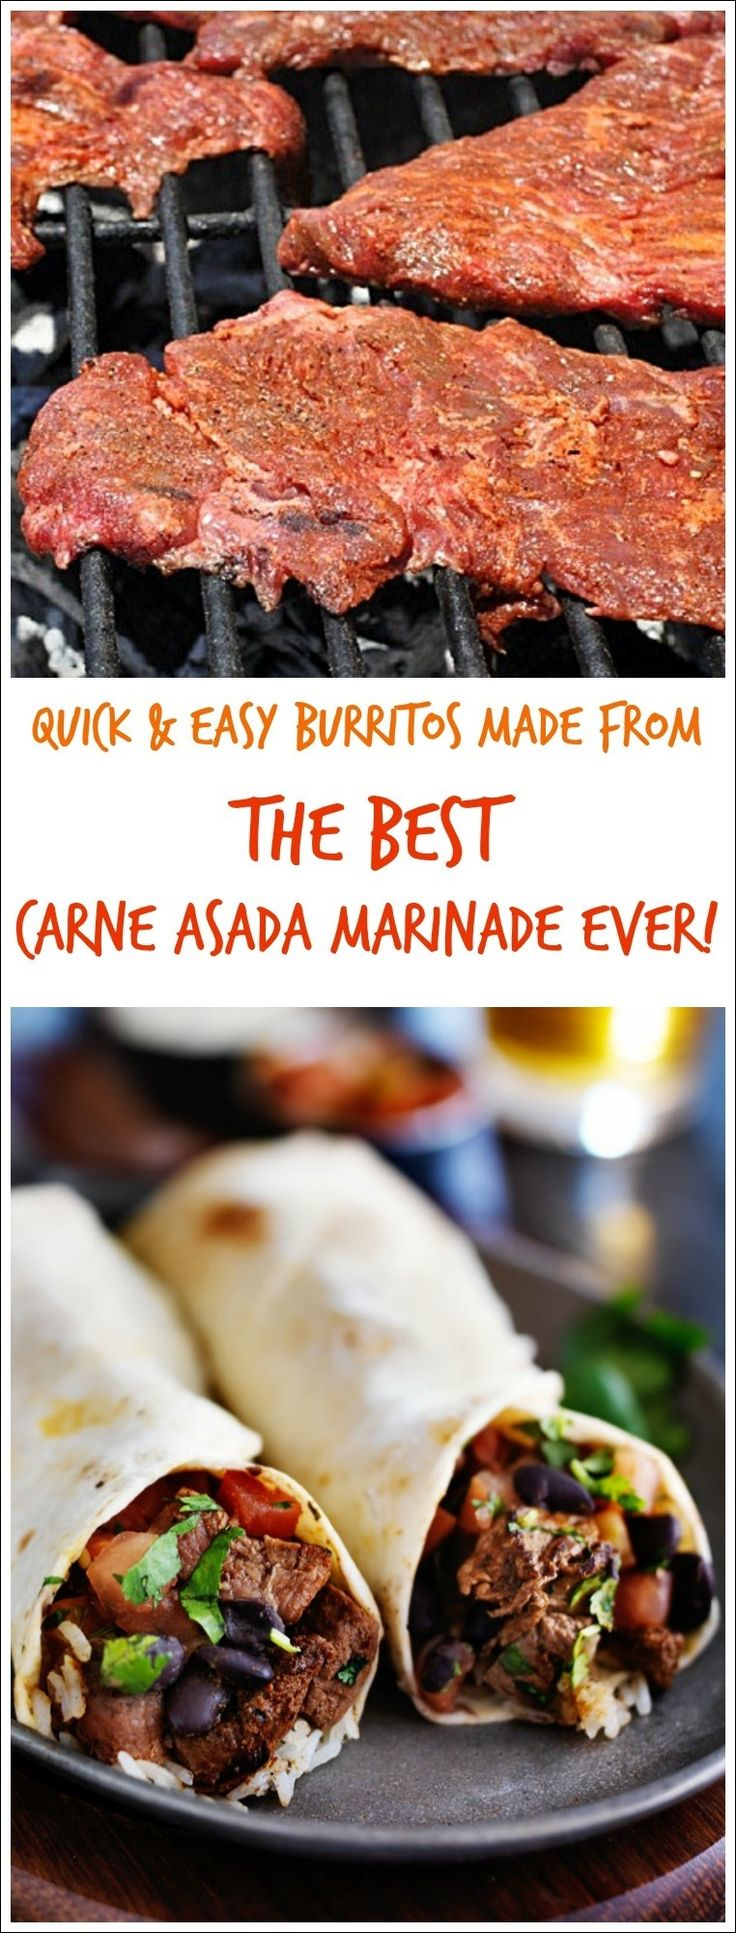 Looking for a quick and easy carne asada burrito or taco recipe? Try the Best Carne Asada Recipe Ever! It's so easy that you'll never bother with Mexican take out again for dinner or parties. via @amnichols